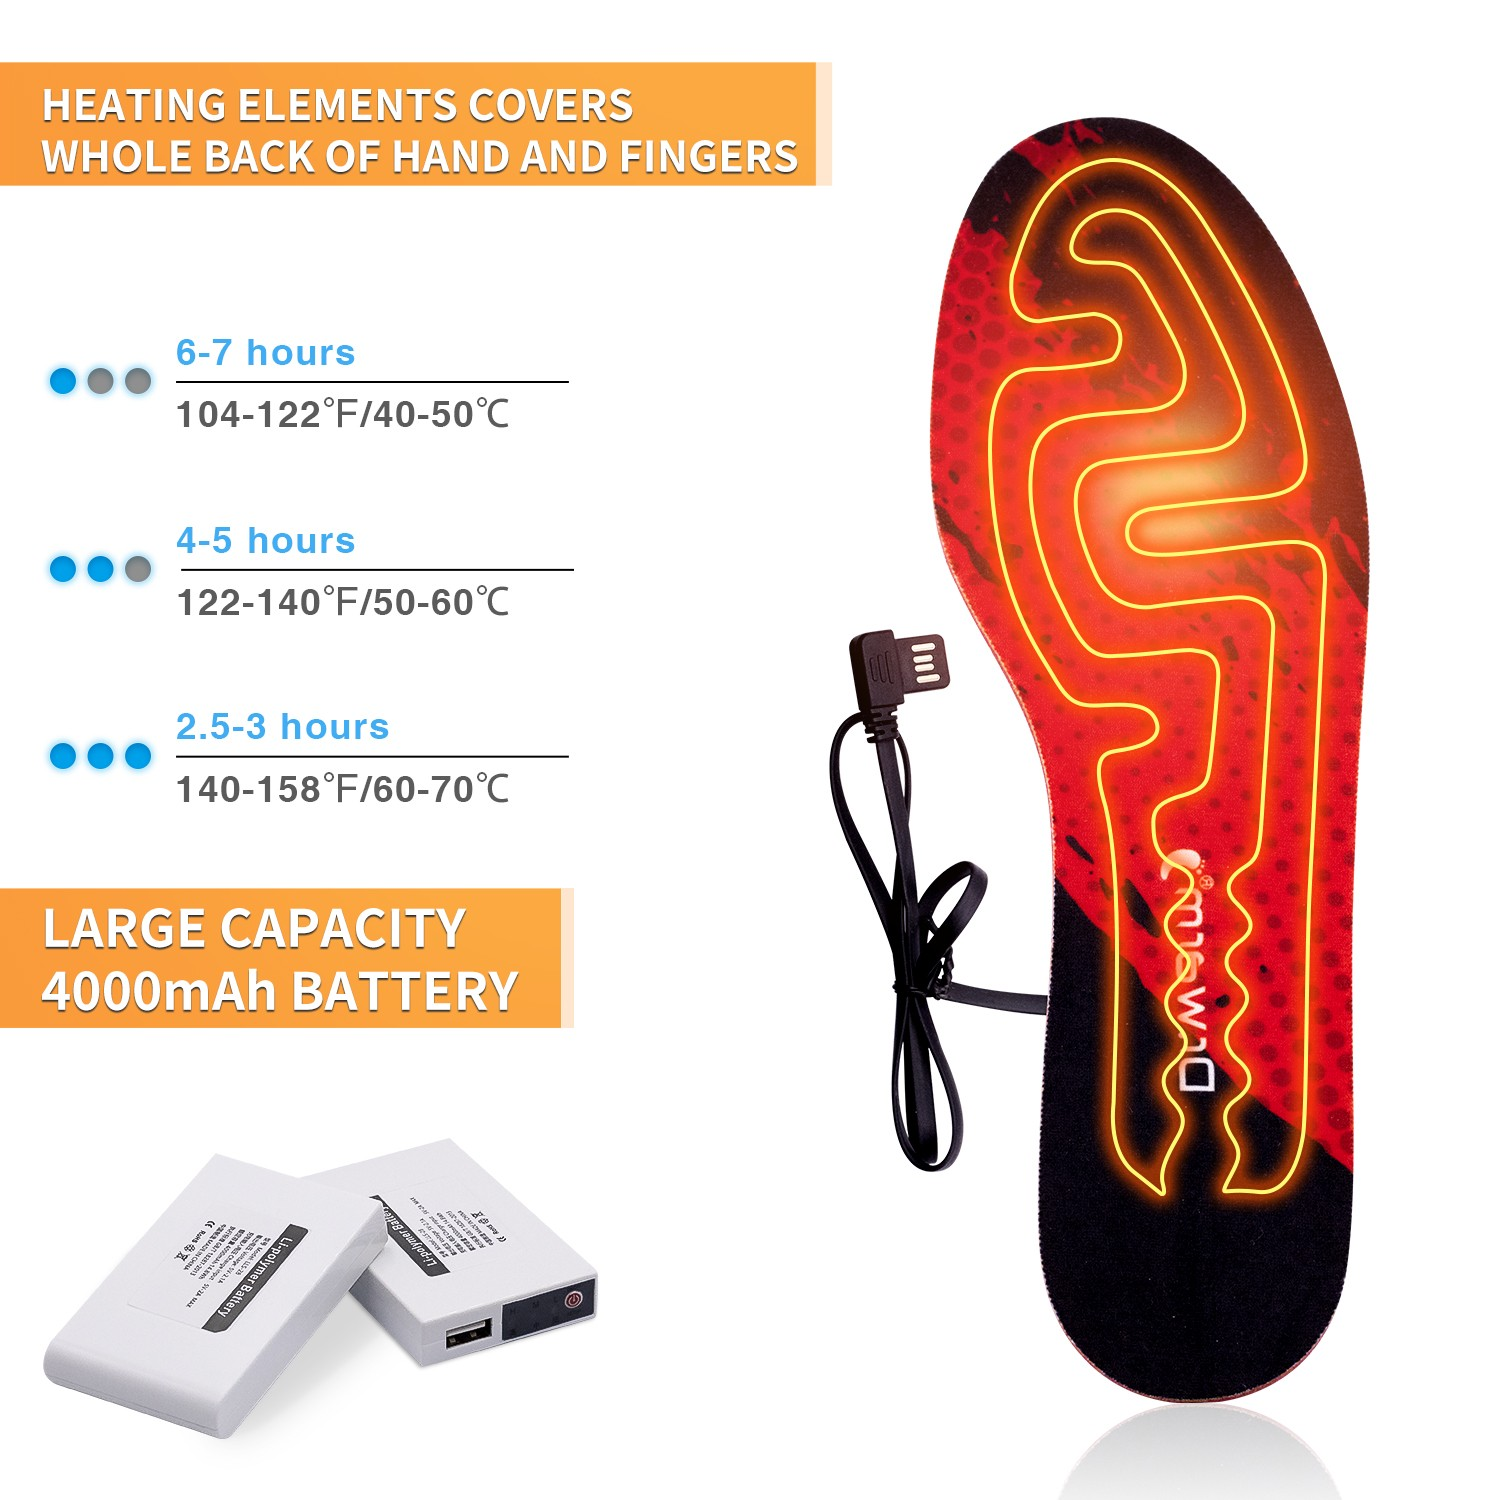 Dr. Warm battery heated insoles-12